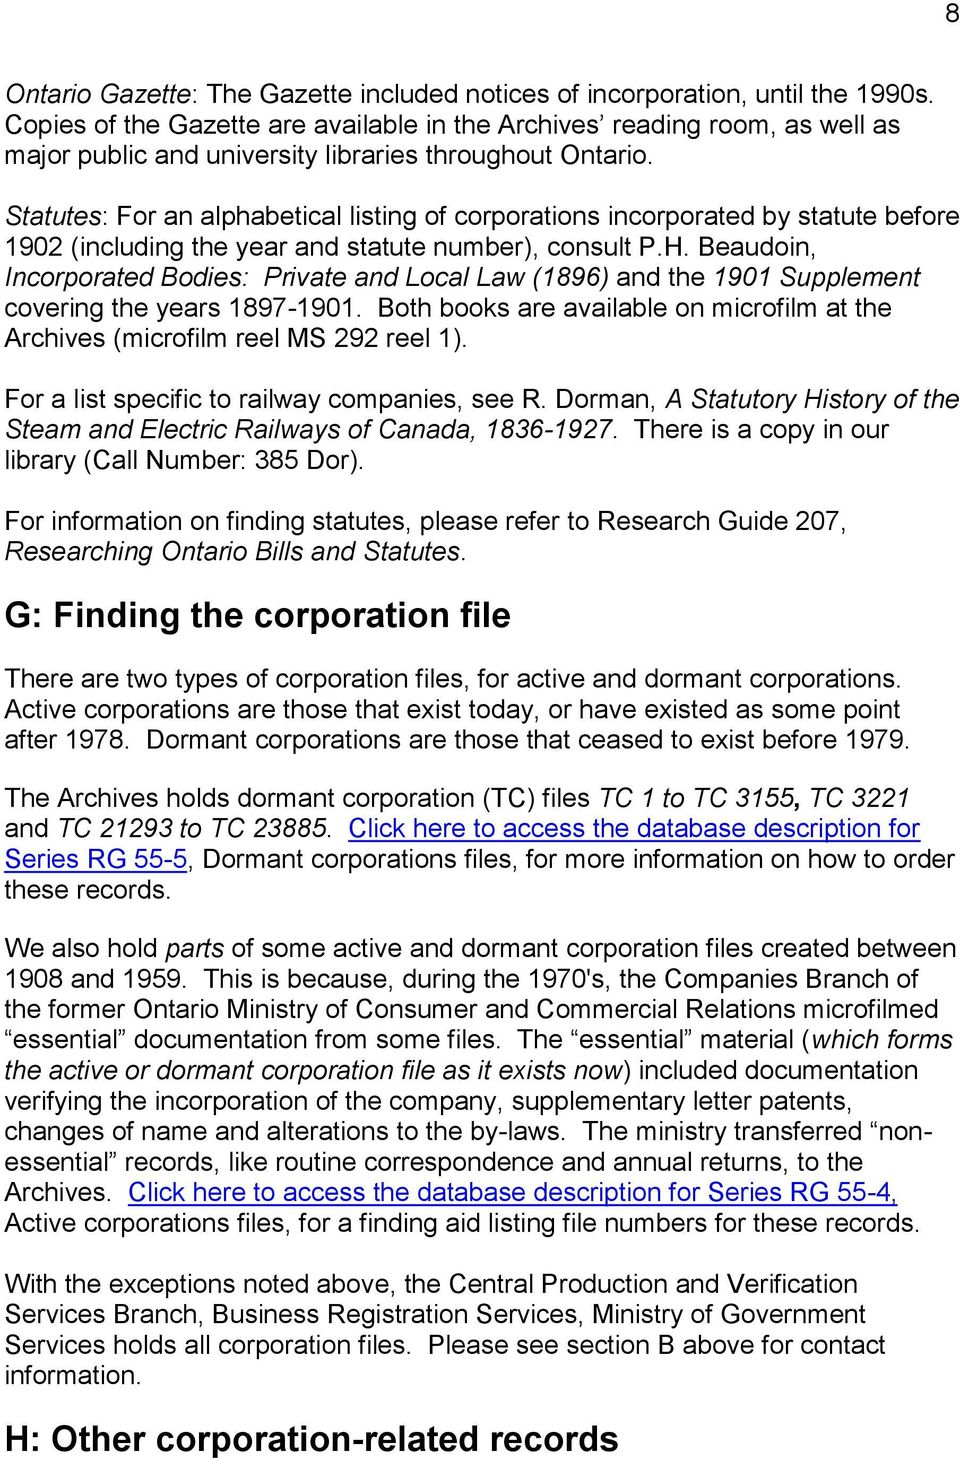 Statutes: For an alphabetical listing of corporations incorporated by statute before 1902 (including the year and statute number), consult P.H.